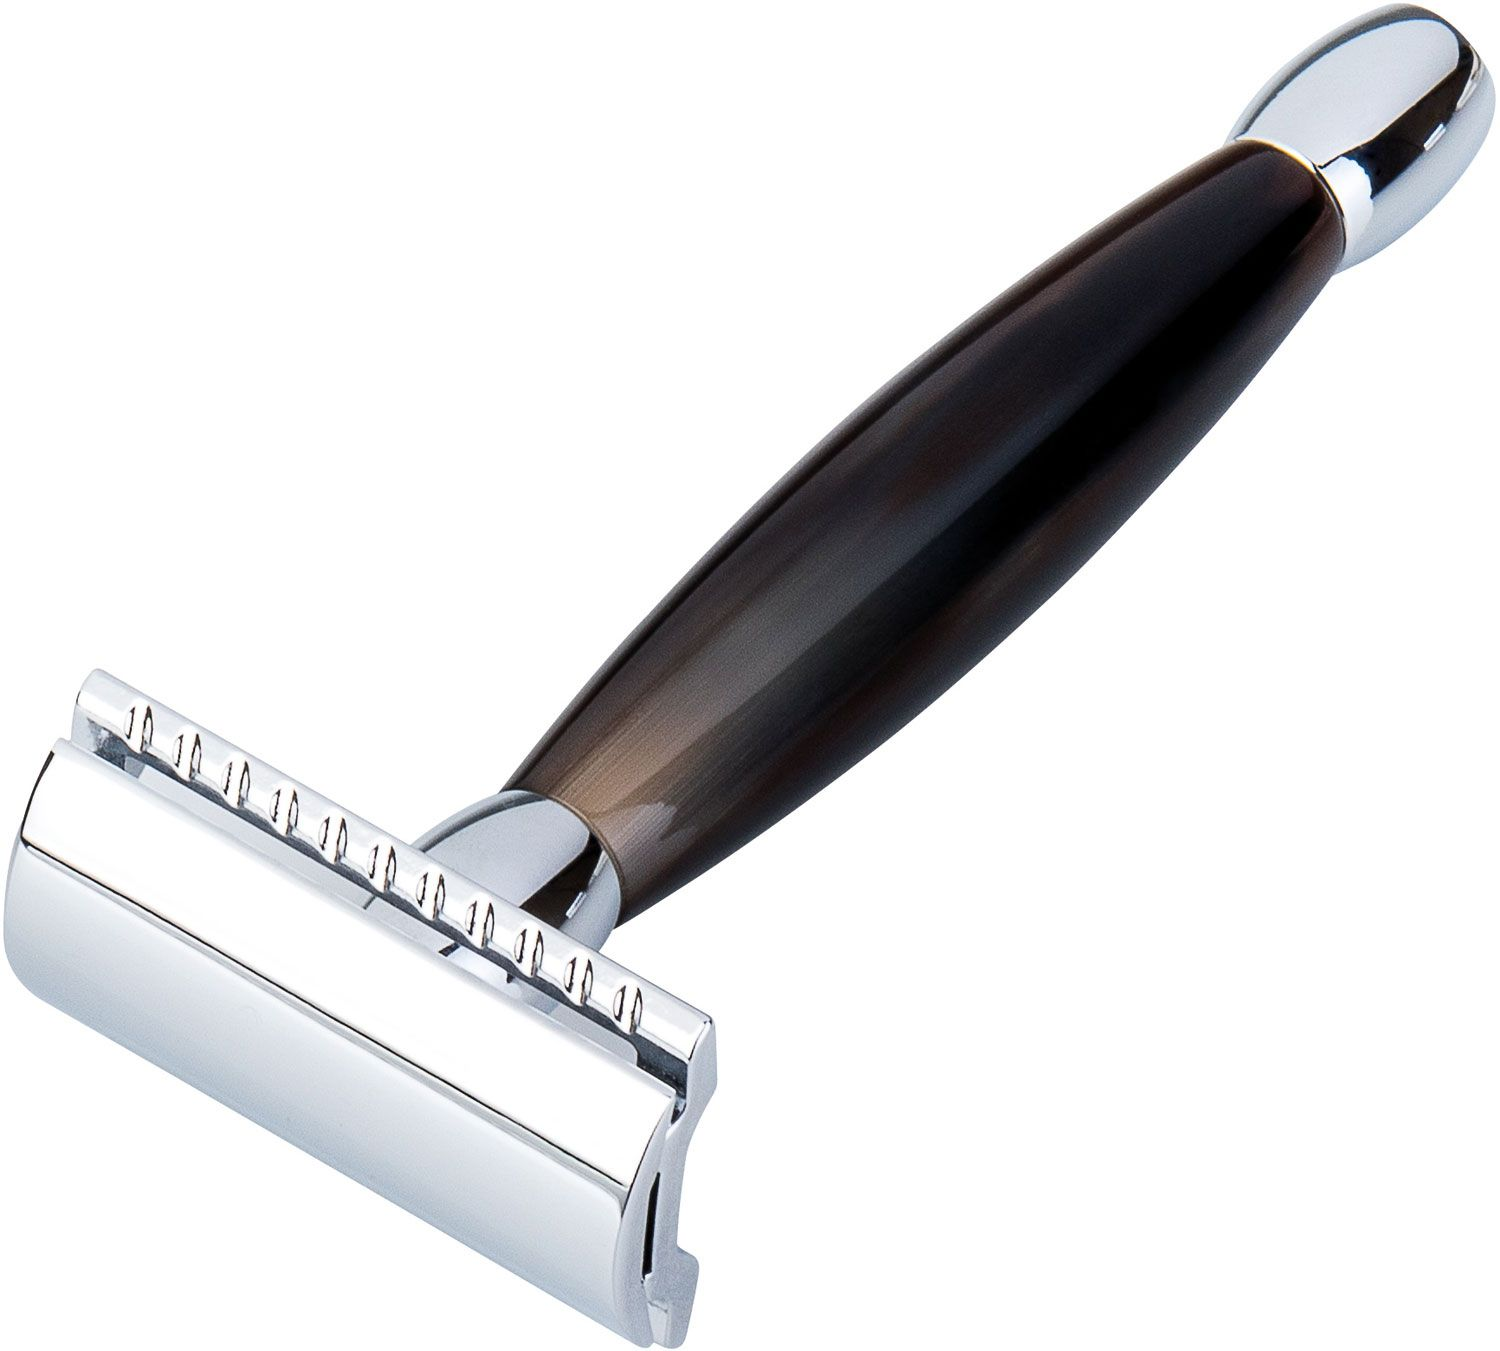 Merkur Safety Razor, Chrome Head, Polished African Cowhorn Handle